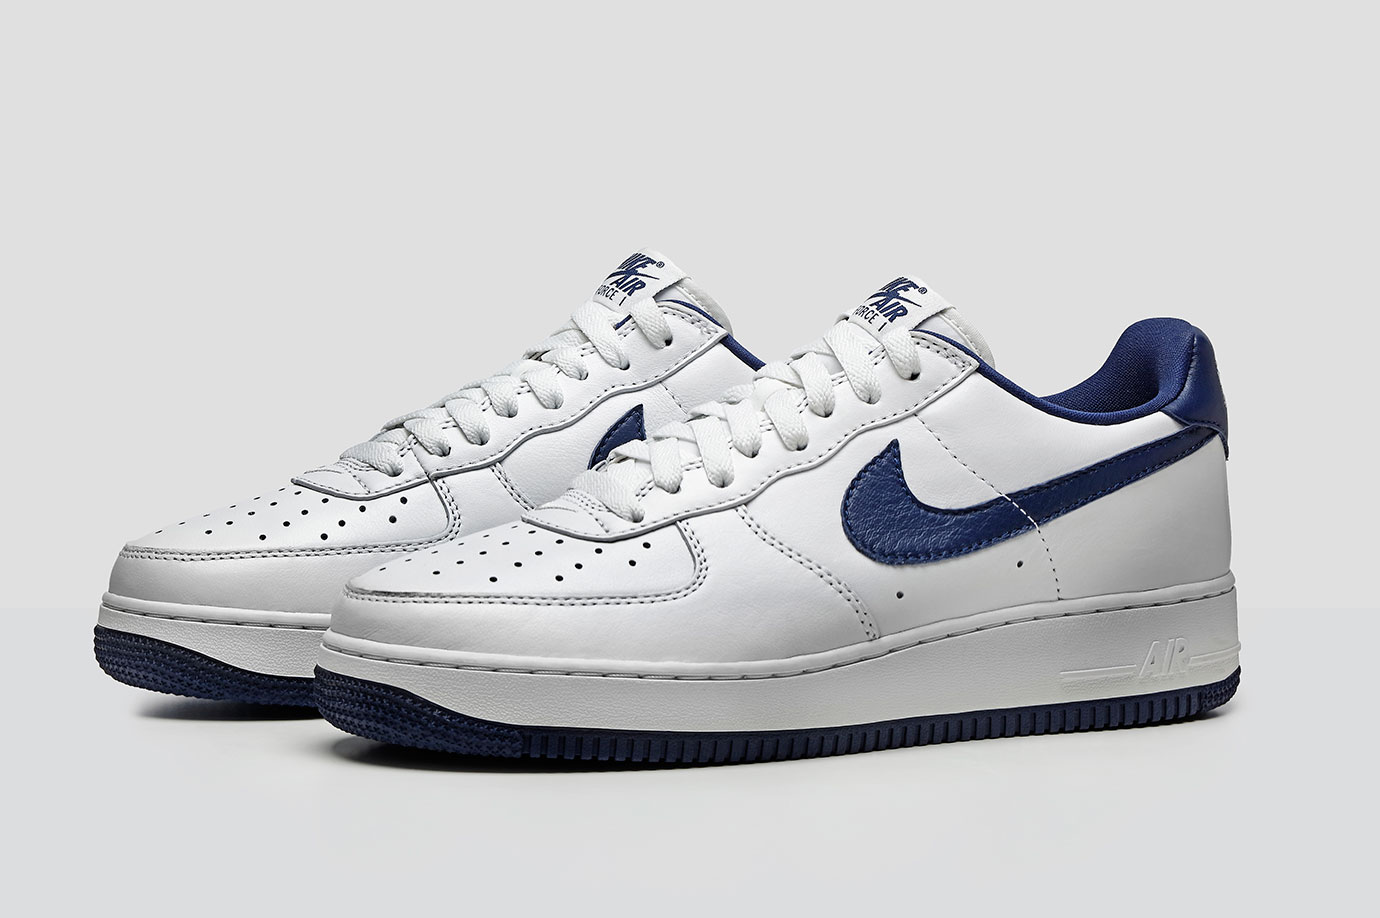 nike nai ke air force 1 low hypebeast. Black Bedroom Furniture Sets. Home Design Ideas